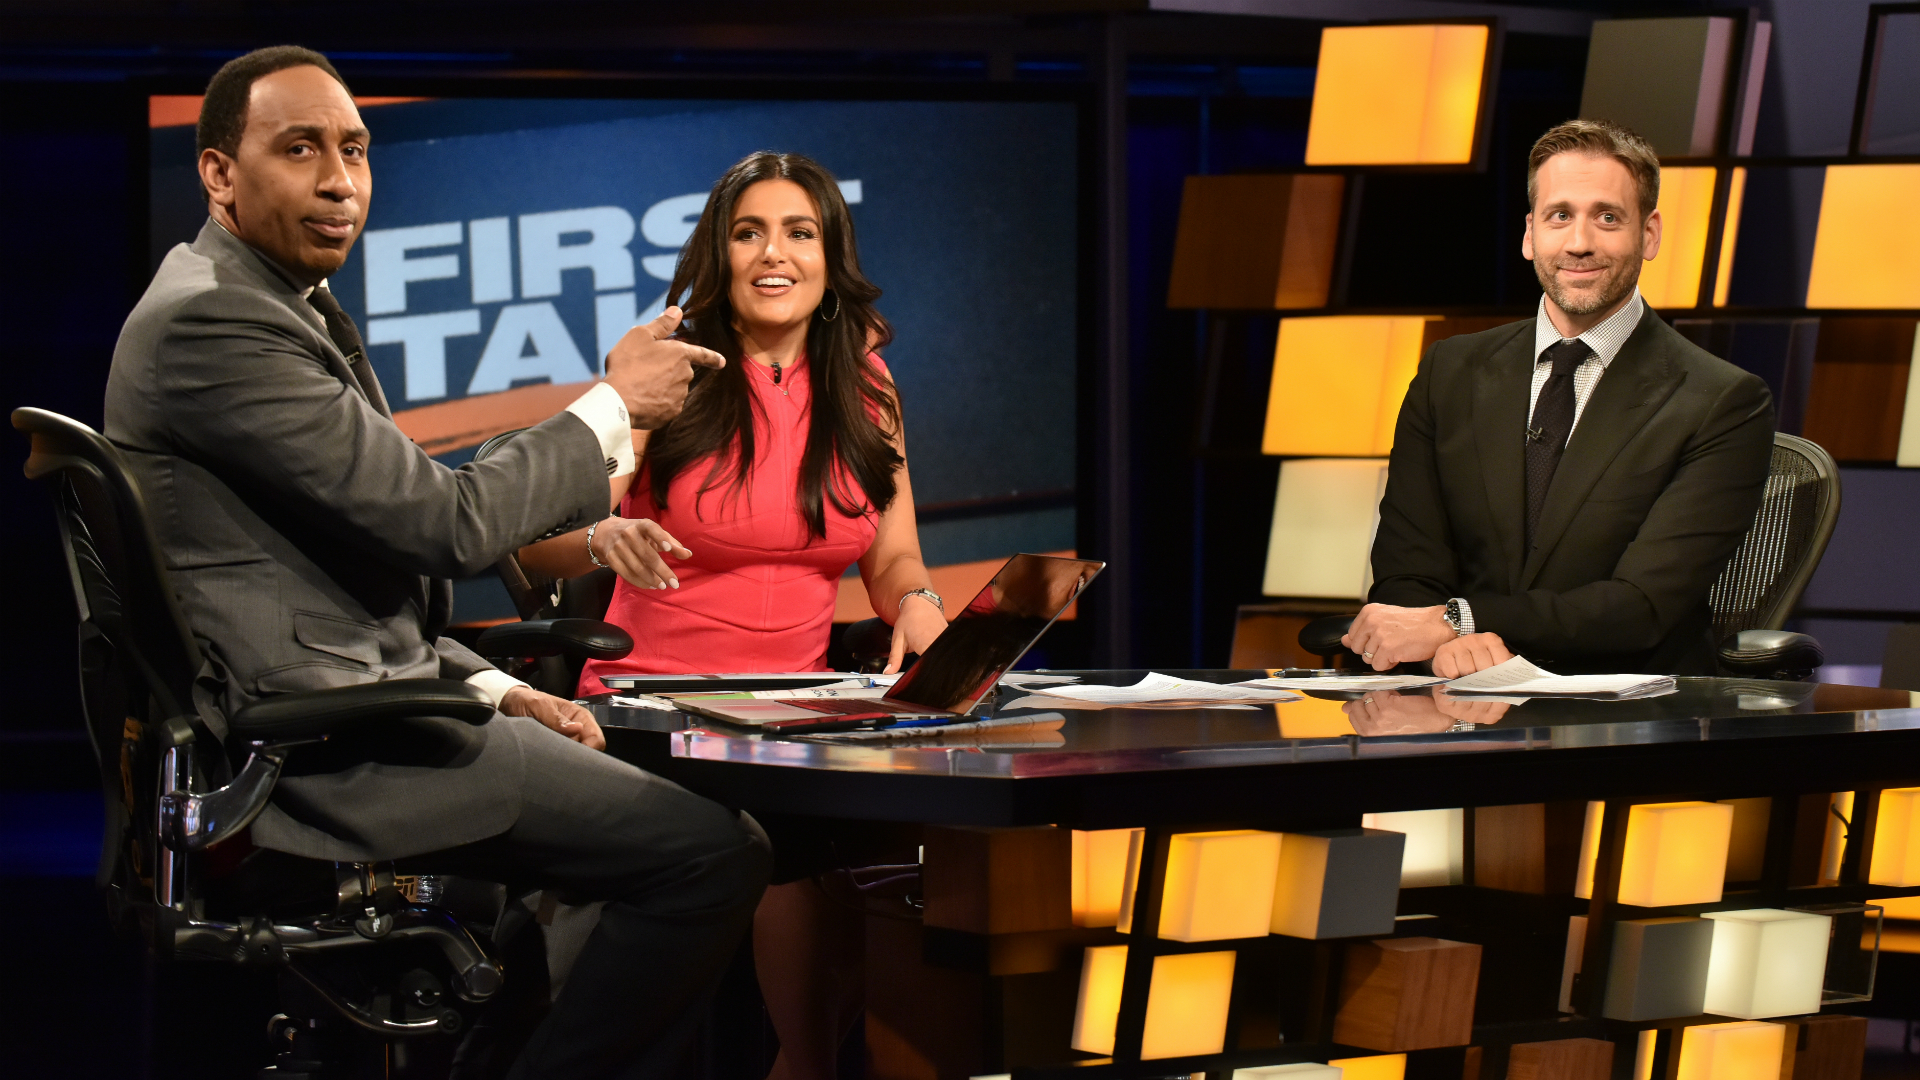 1-Stephen-A-Smith-Molly-Qerim-Max-Kellerman-ESPN-FTR-121416